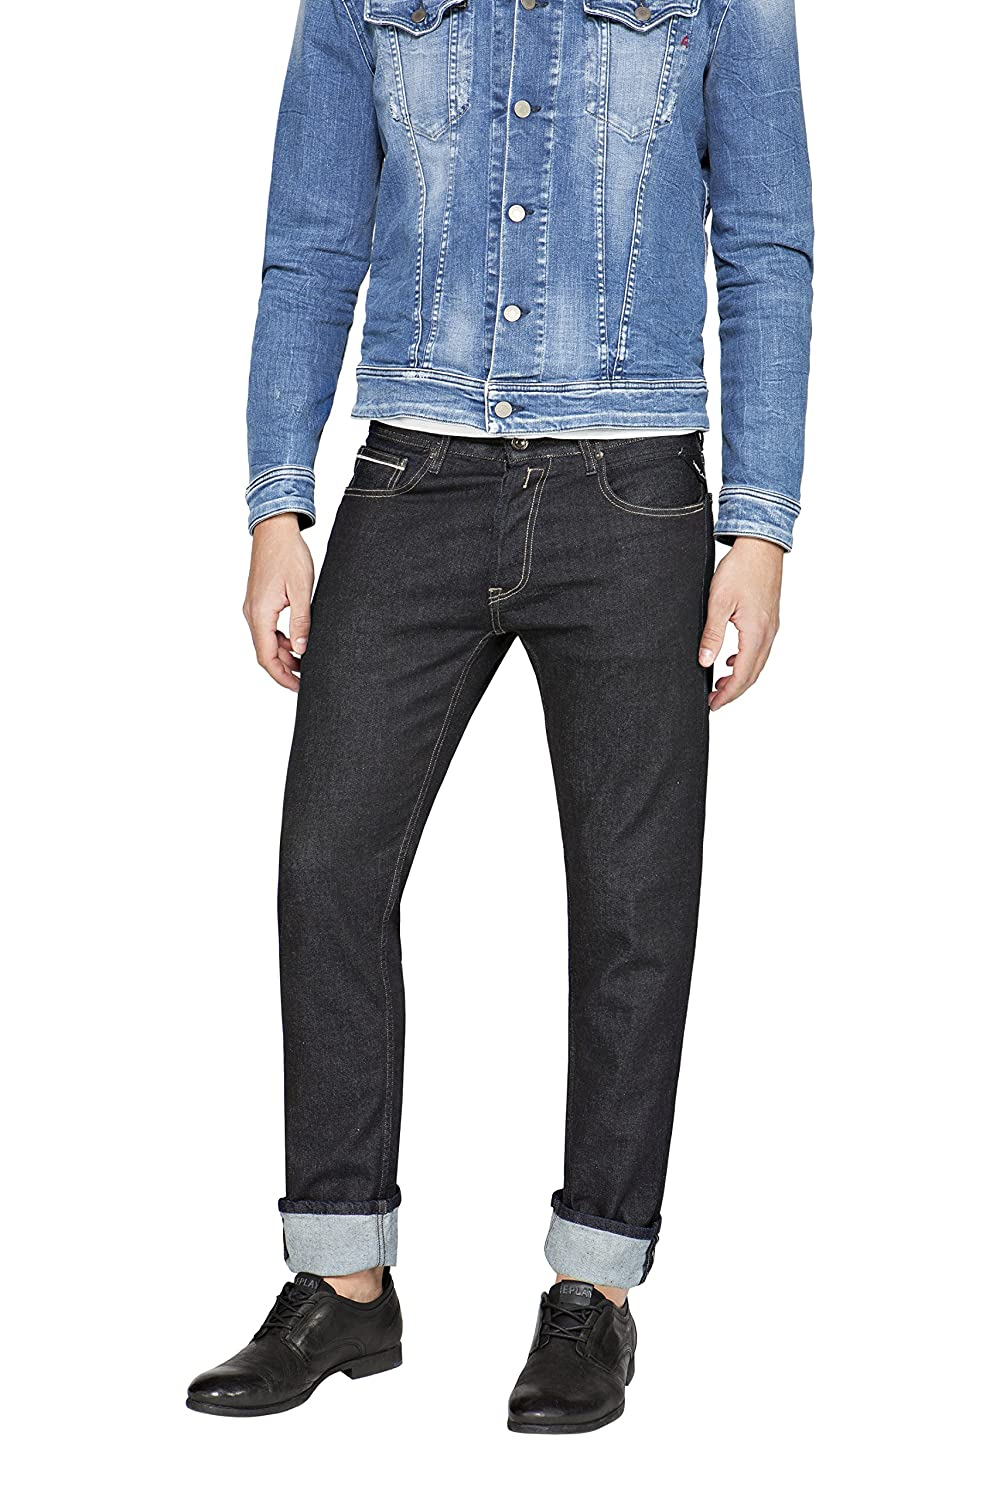 Replay Grover, Jeans Hombre